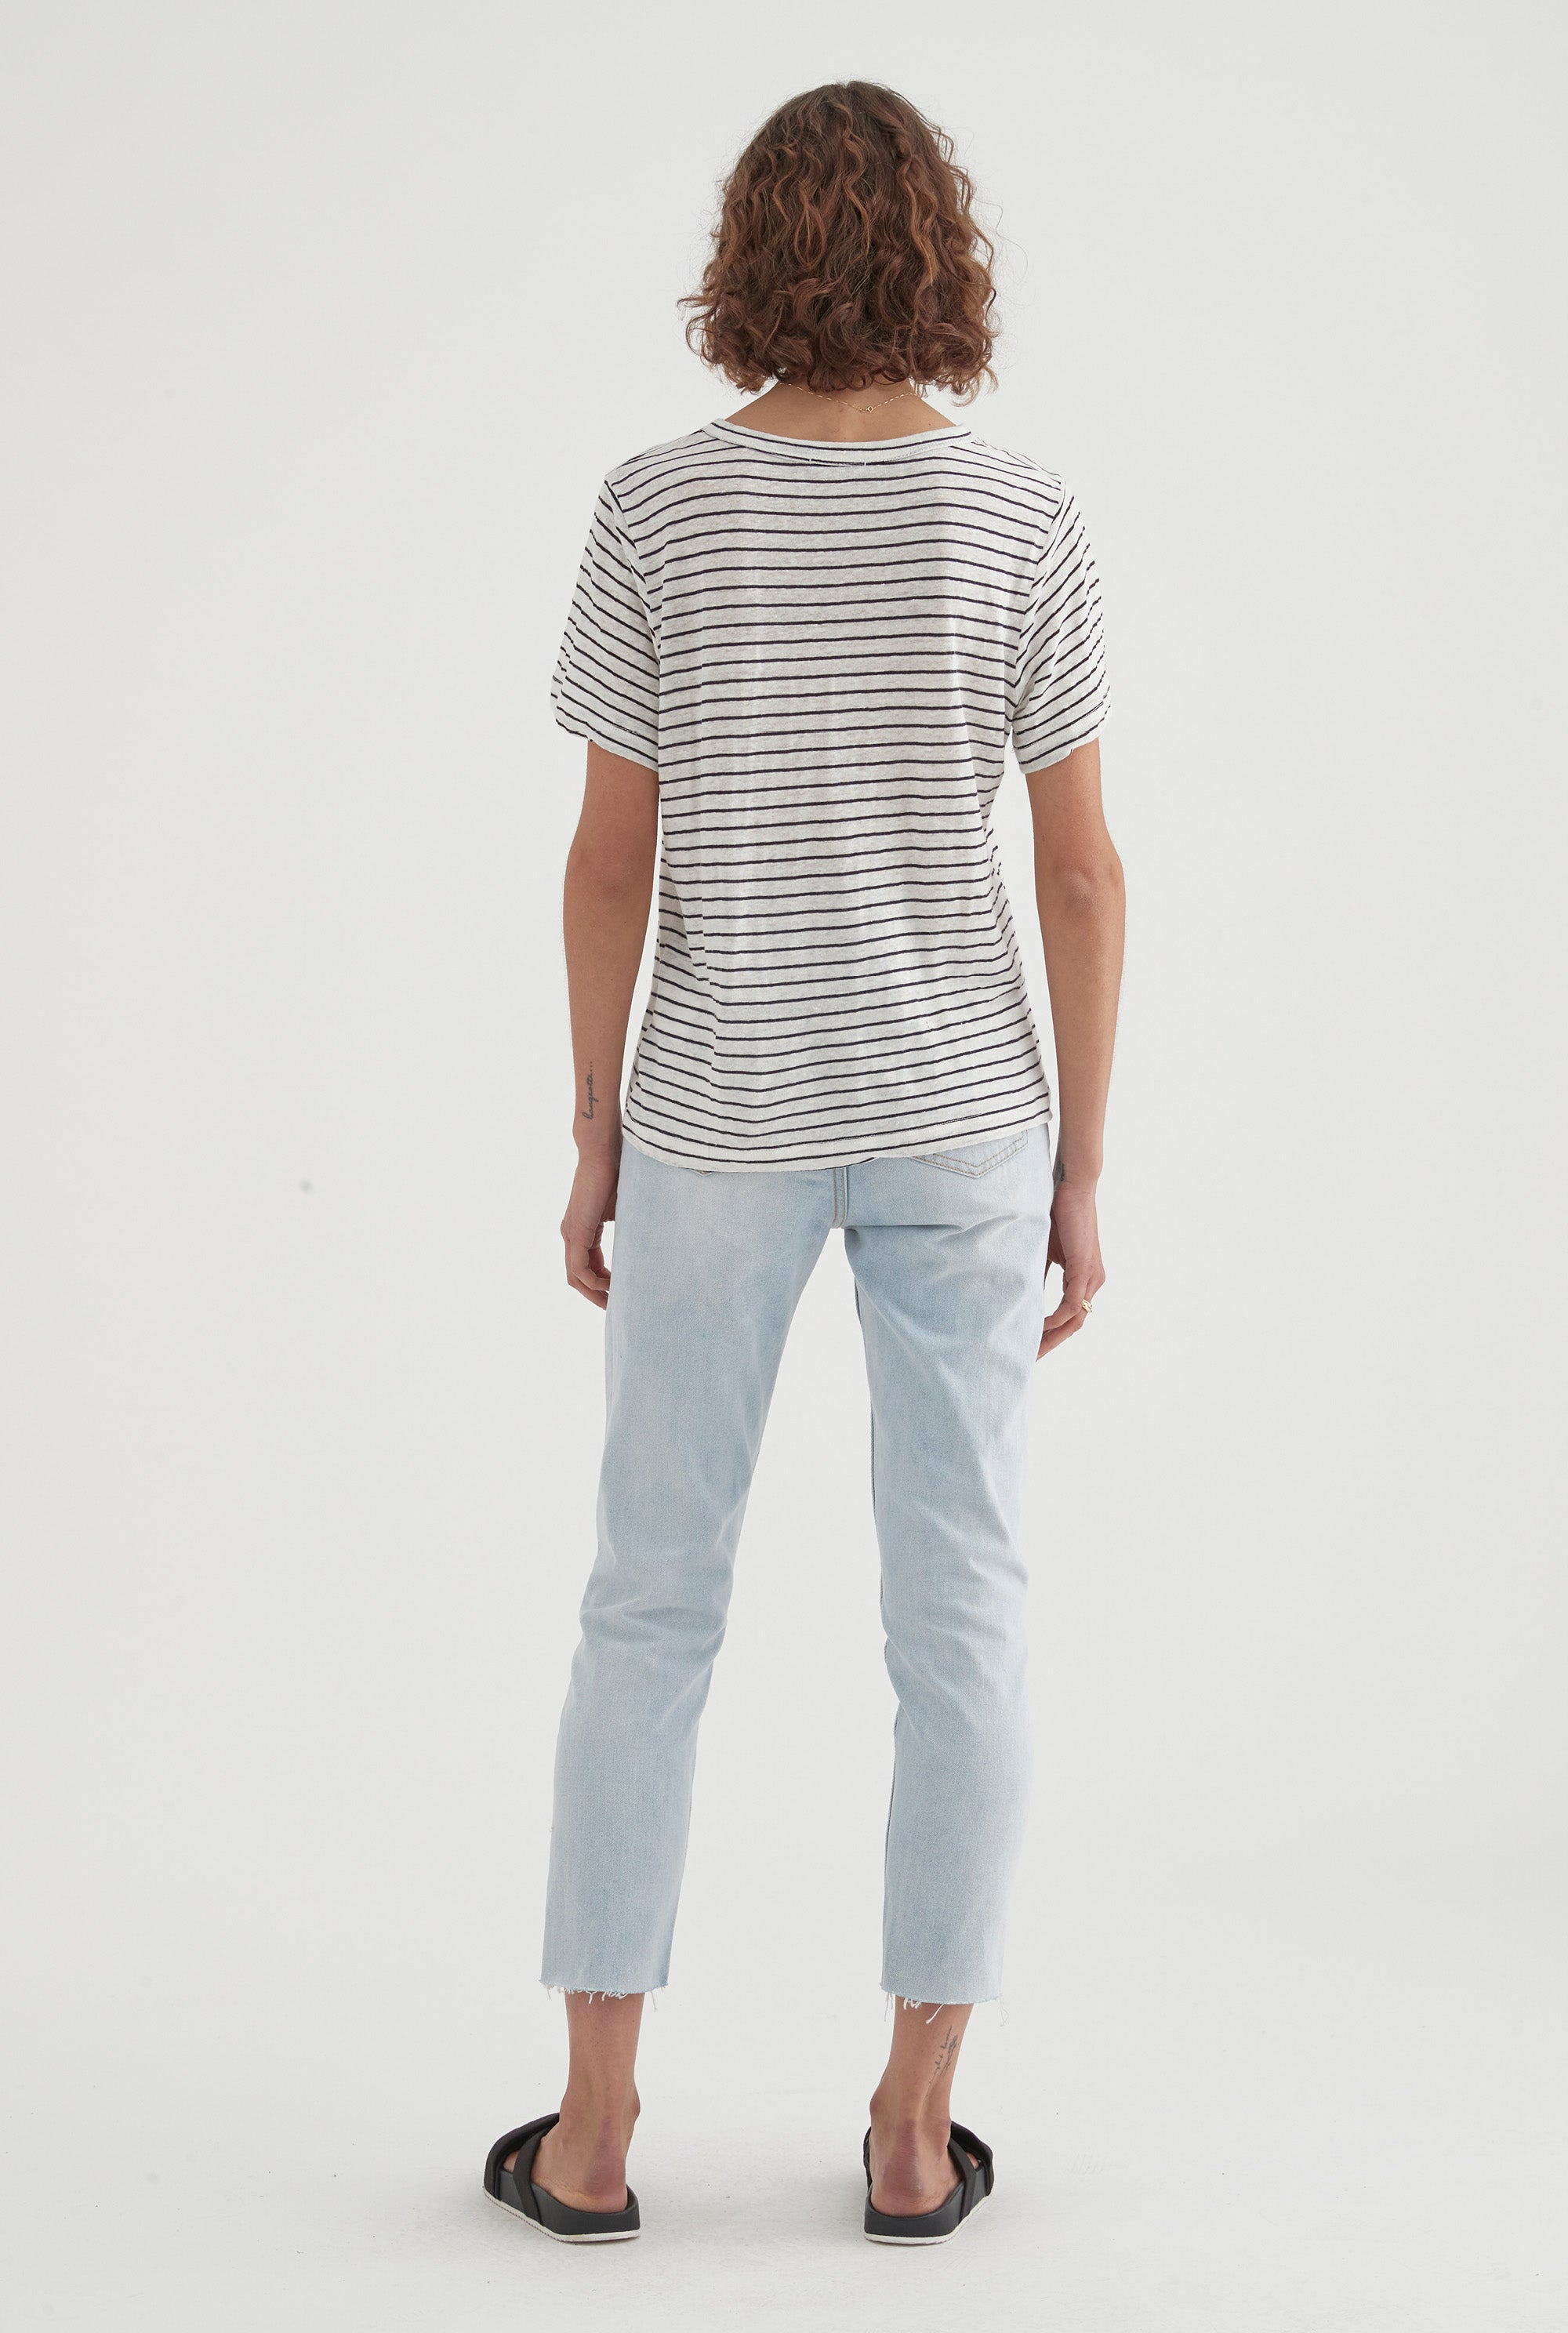 Pocket T-Shirt - White/Black Stripe